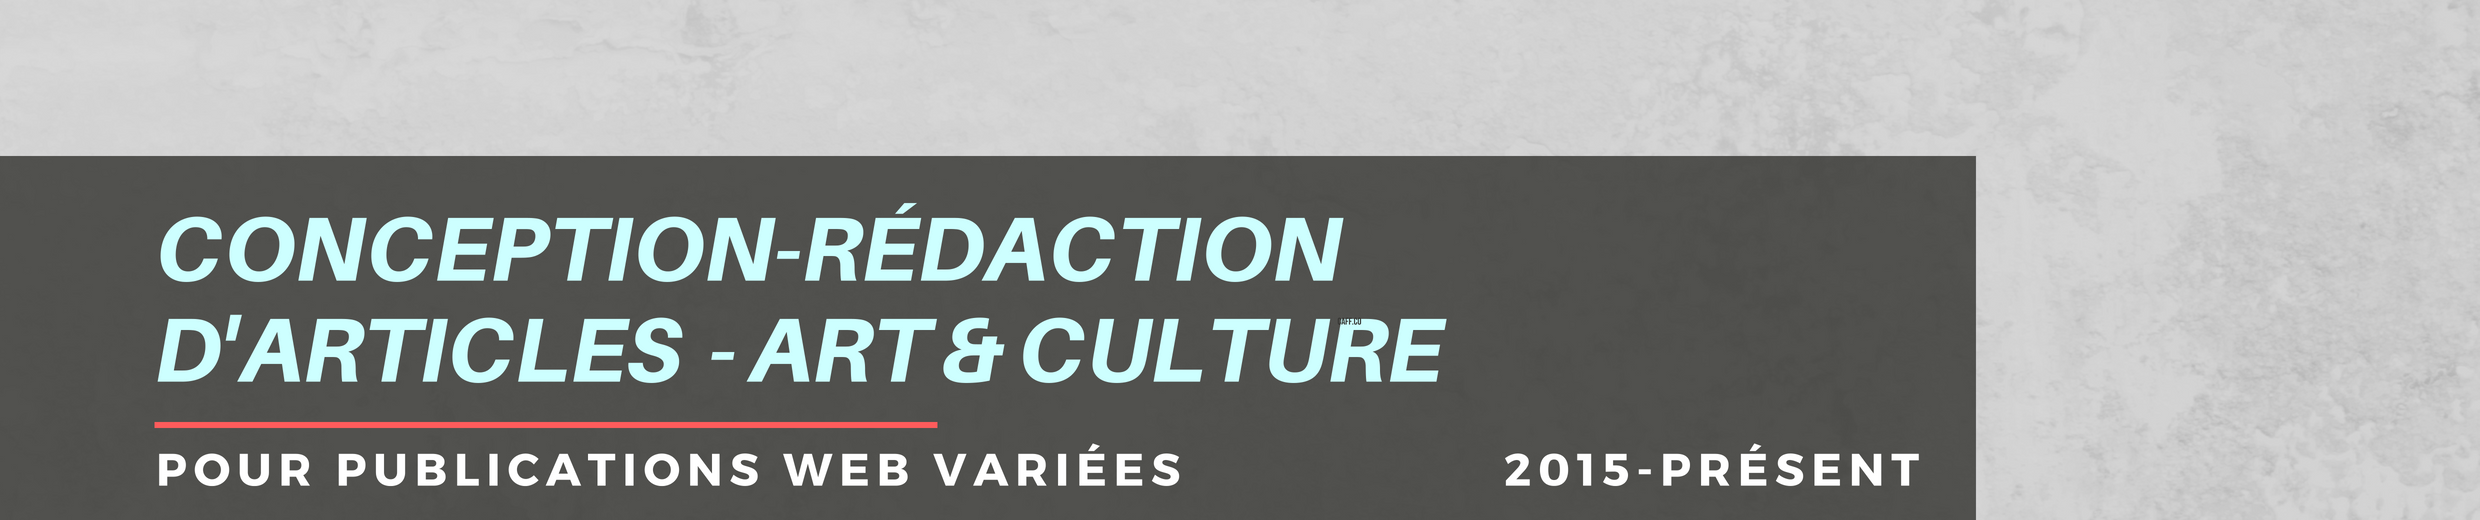 conception-rédaction articles art et culture